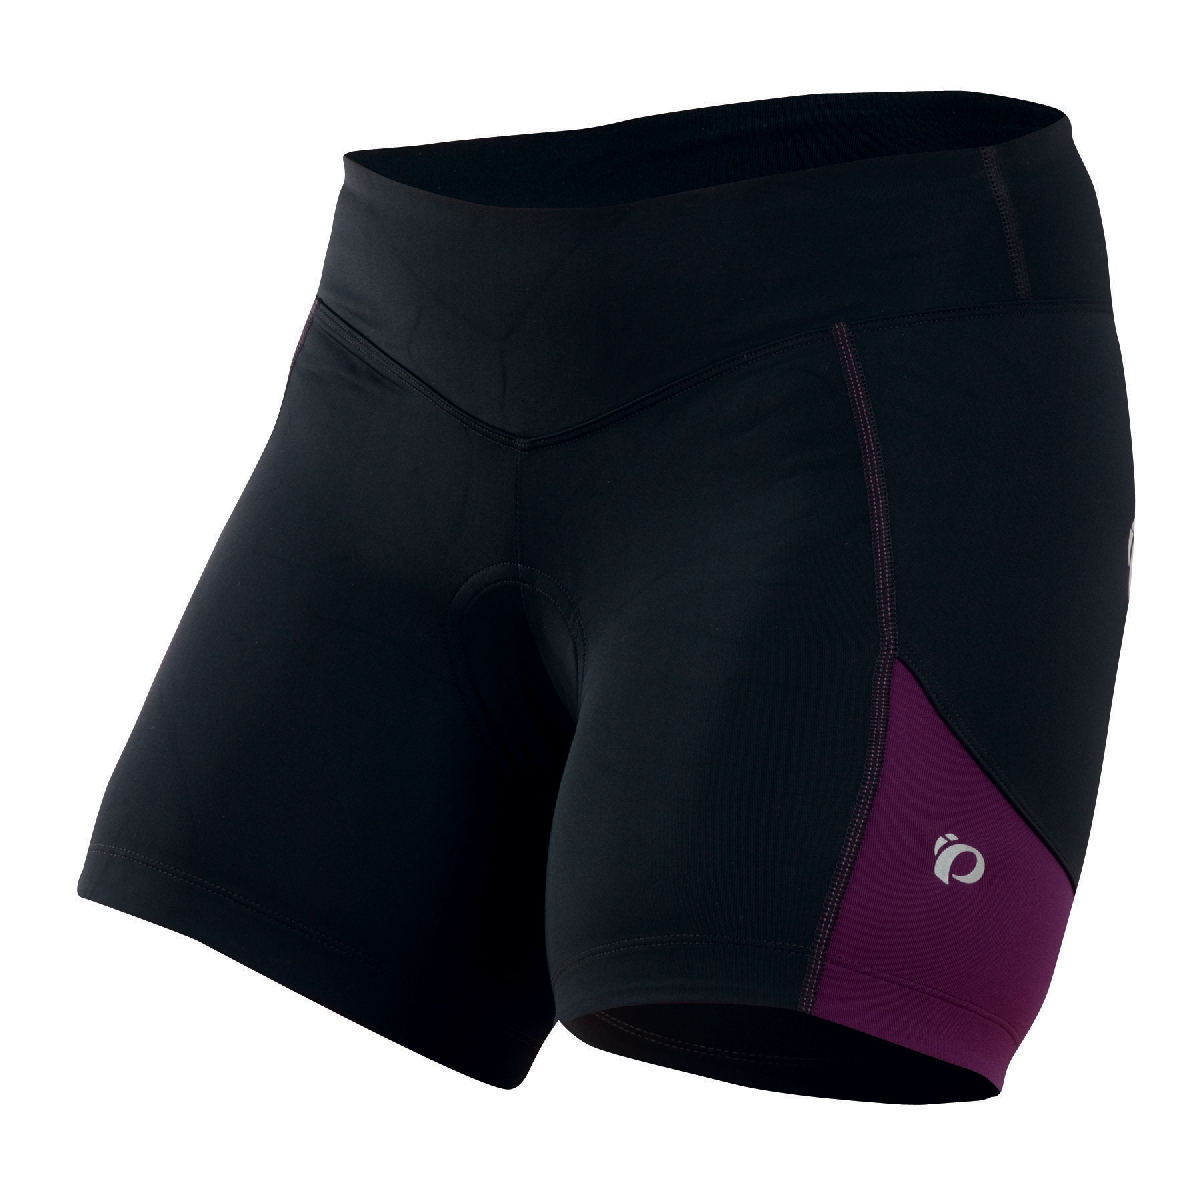 Pearl Izumi Sugar Cycling Short Women's Size XL Black DarkPurple U.S.A. & Canada